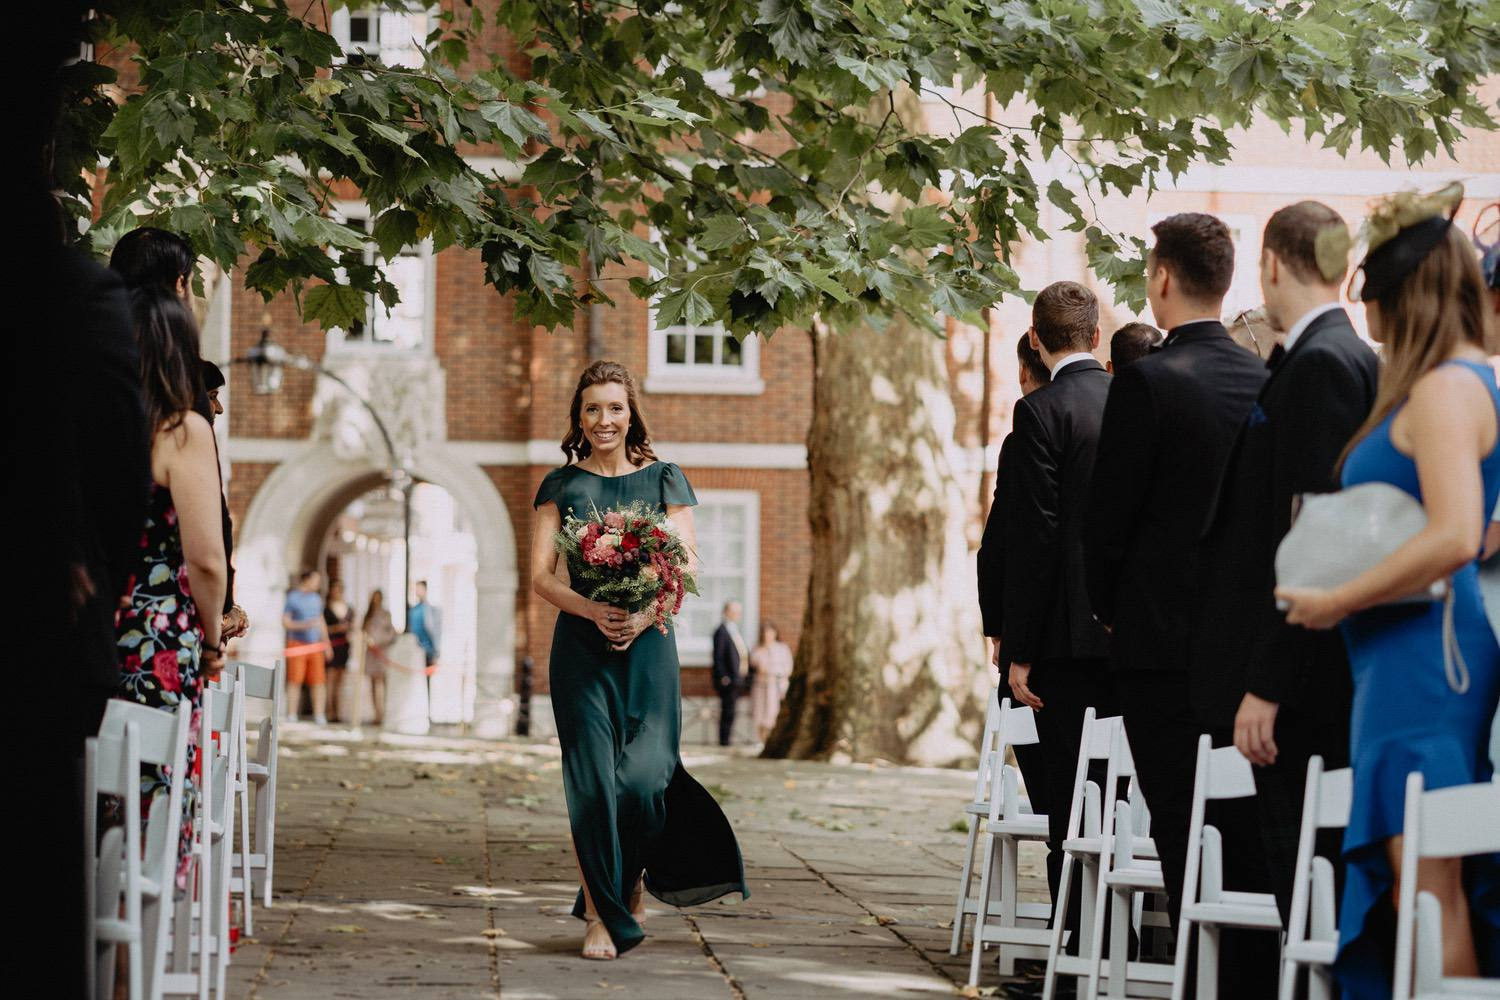 London-Wedding-Photographer-105.jpg